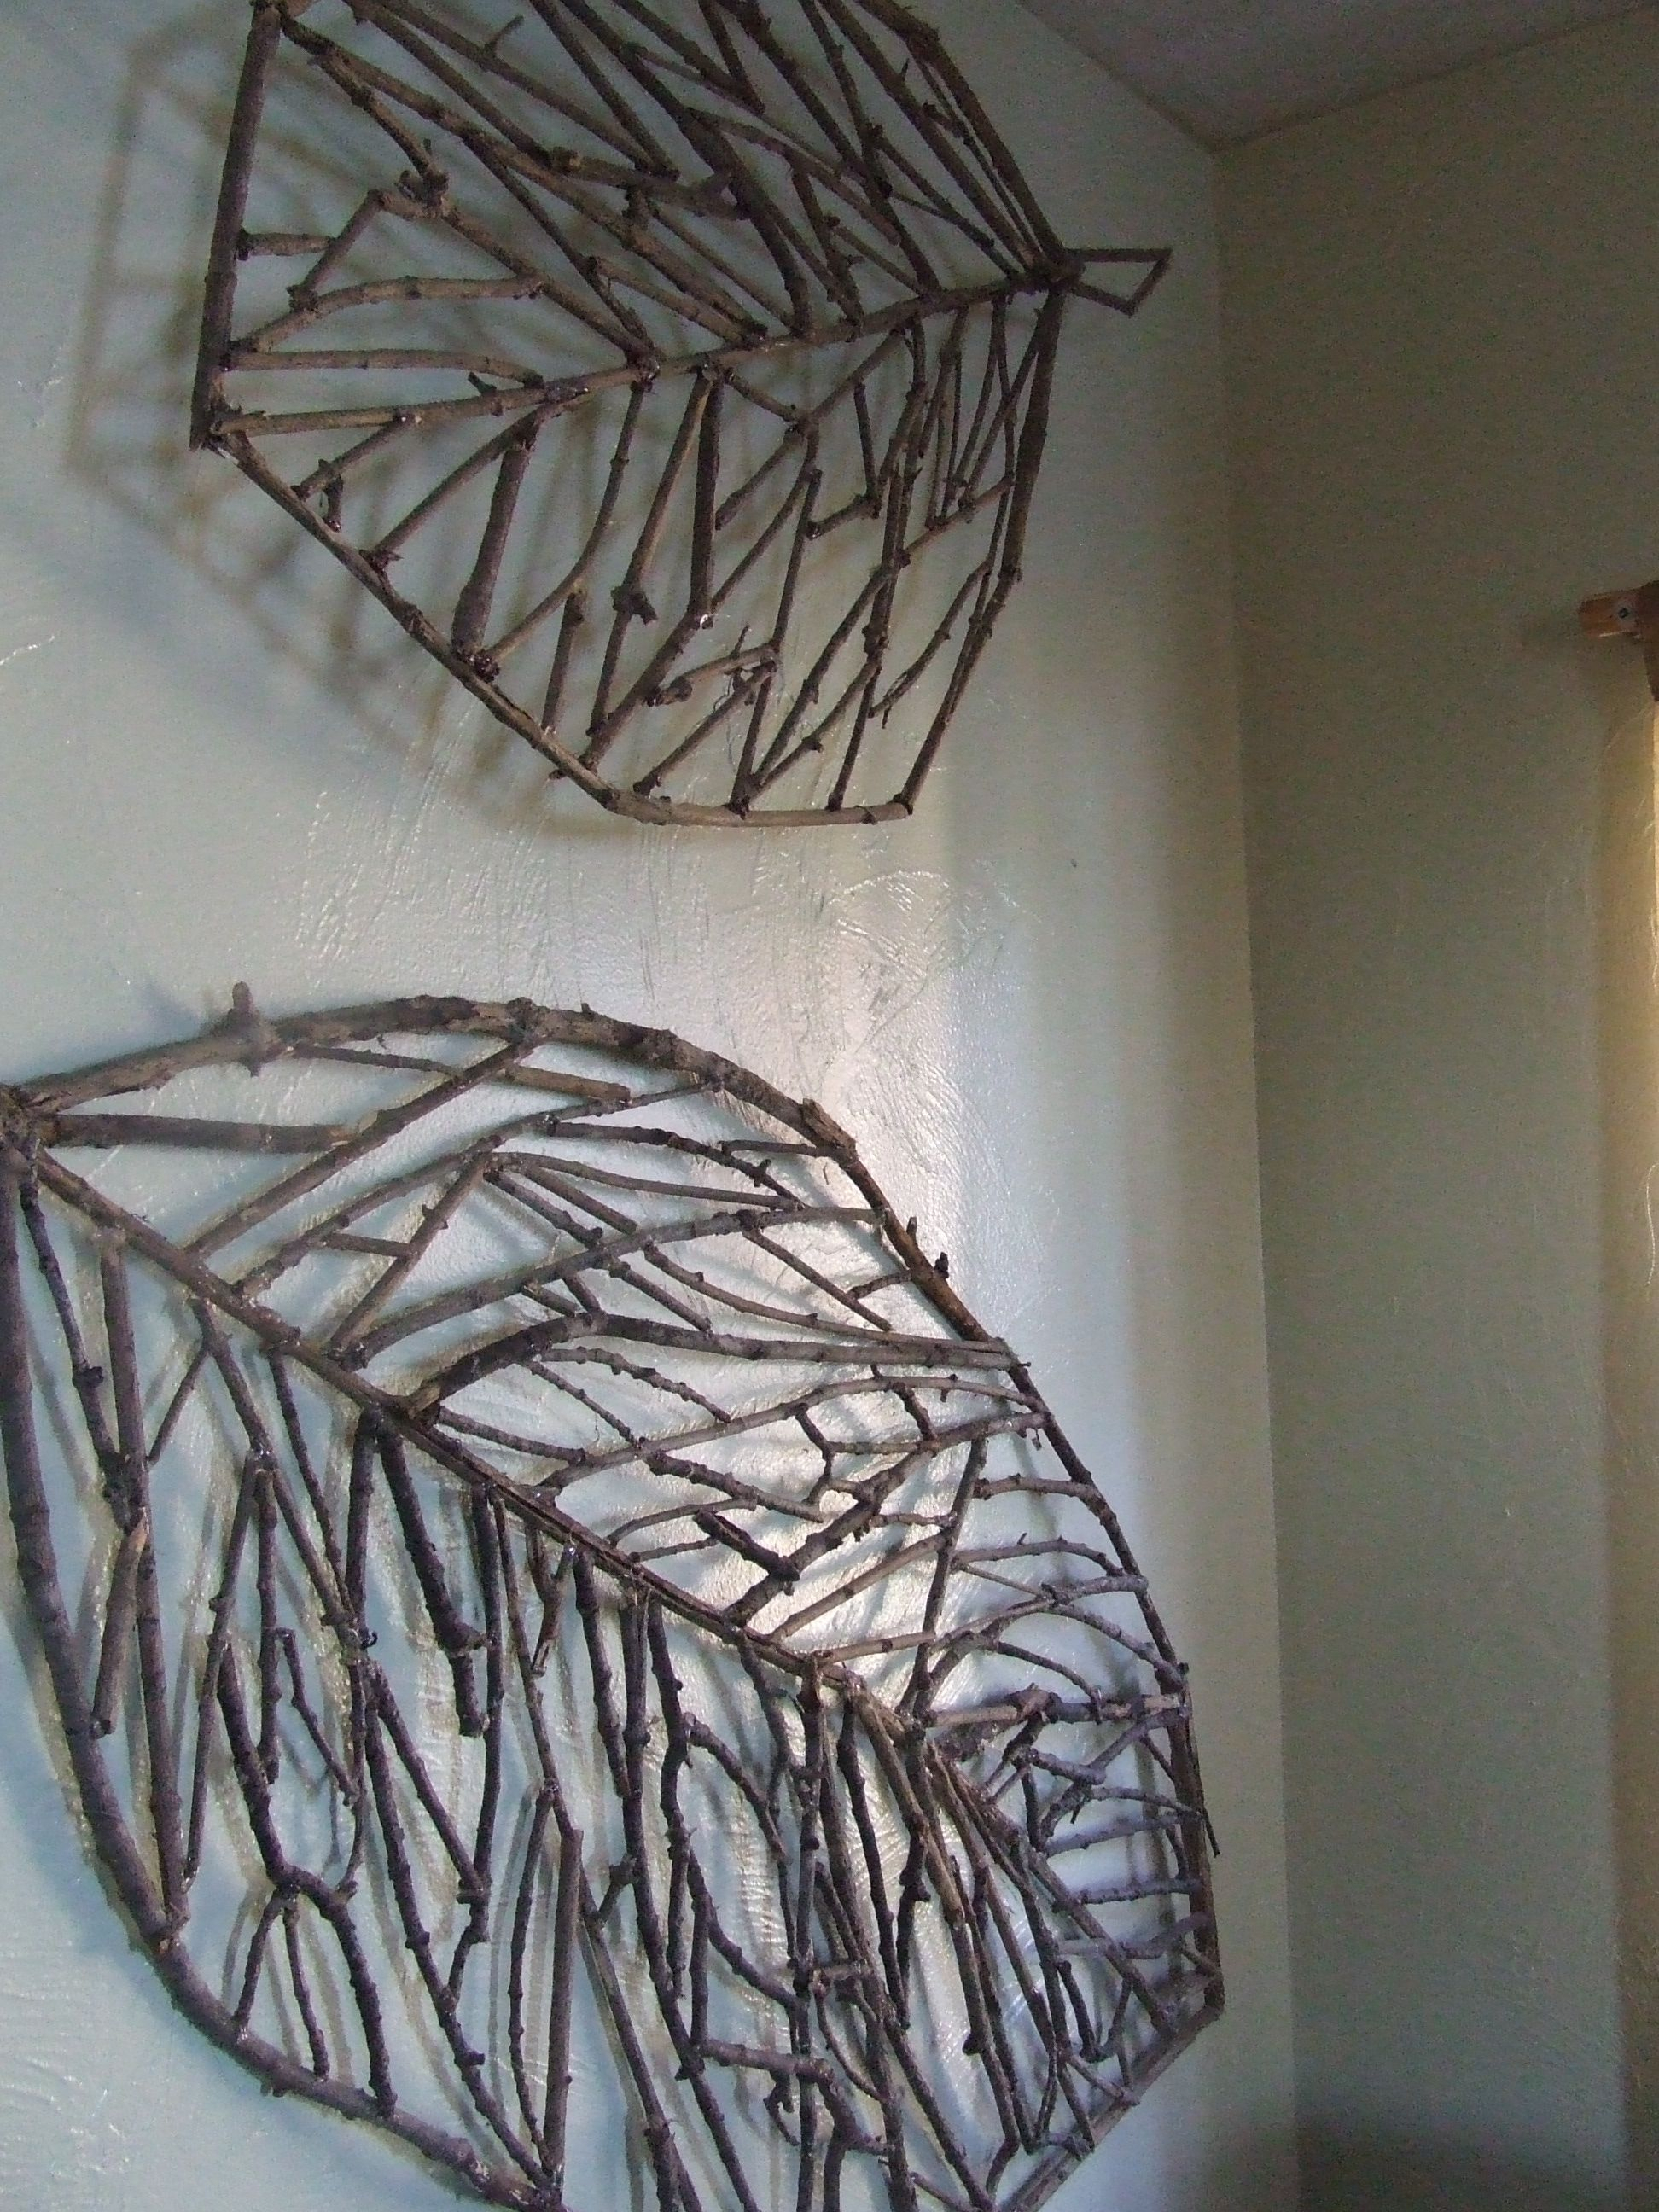 Twig Crafts With Tree Shell Leaves Sculpture Wall Decor (View 11 of 20)